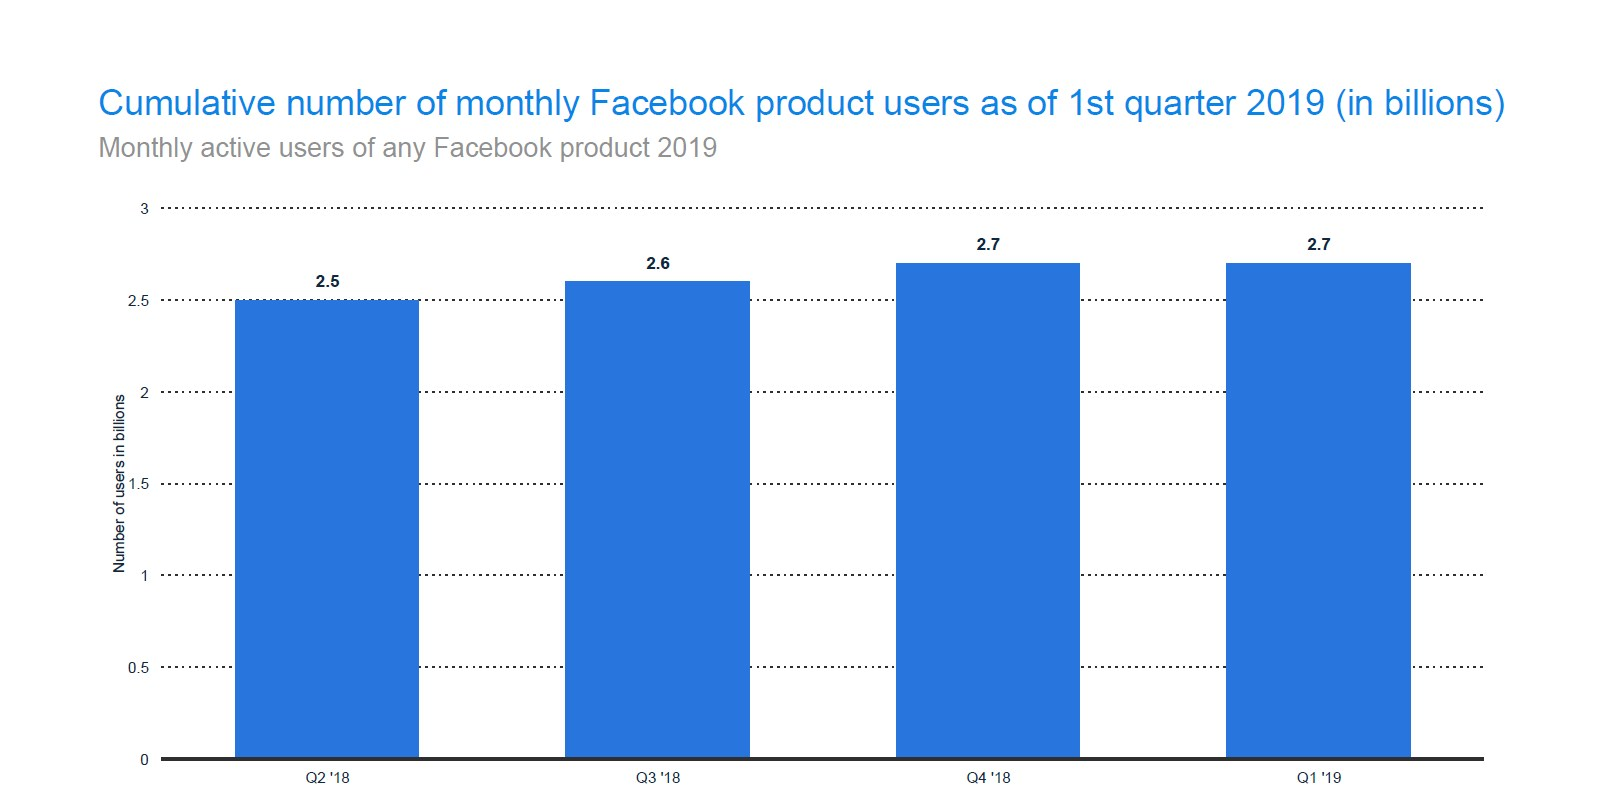 2.7 billion people use Facebook products each month